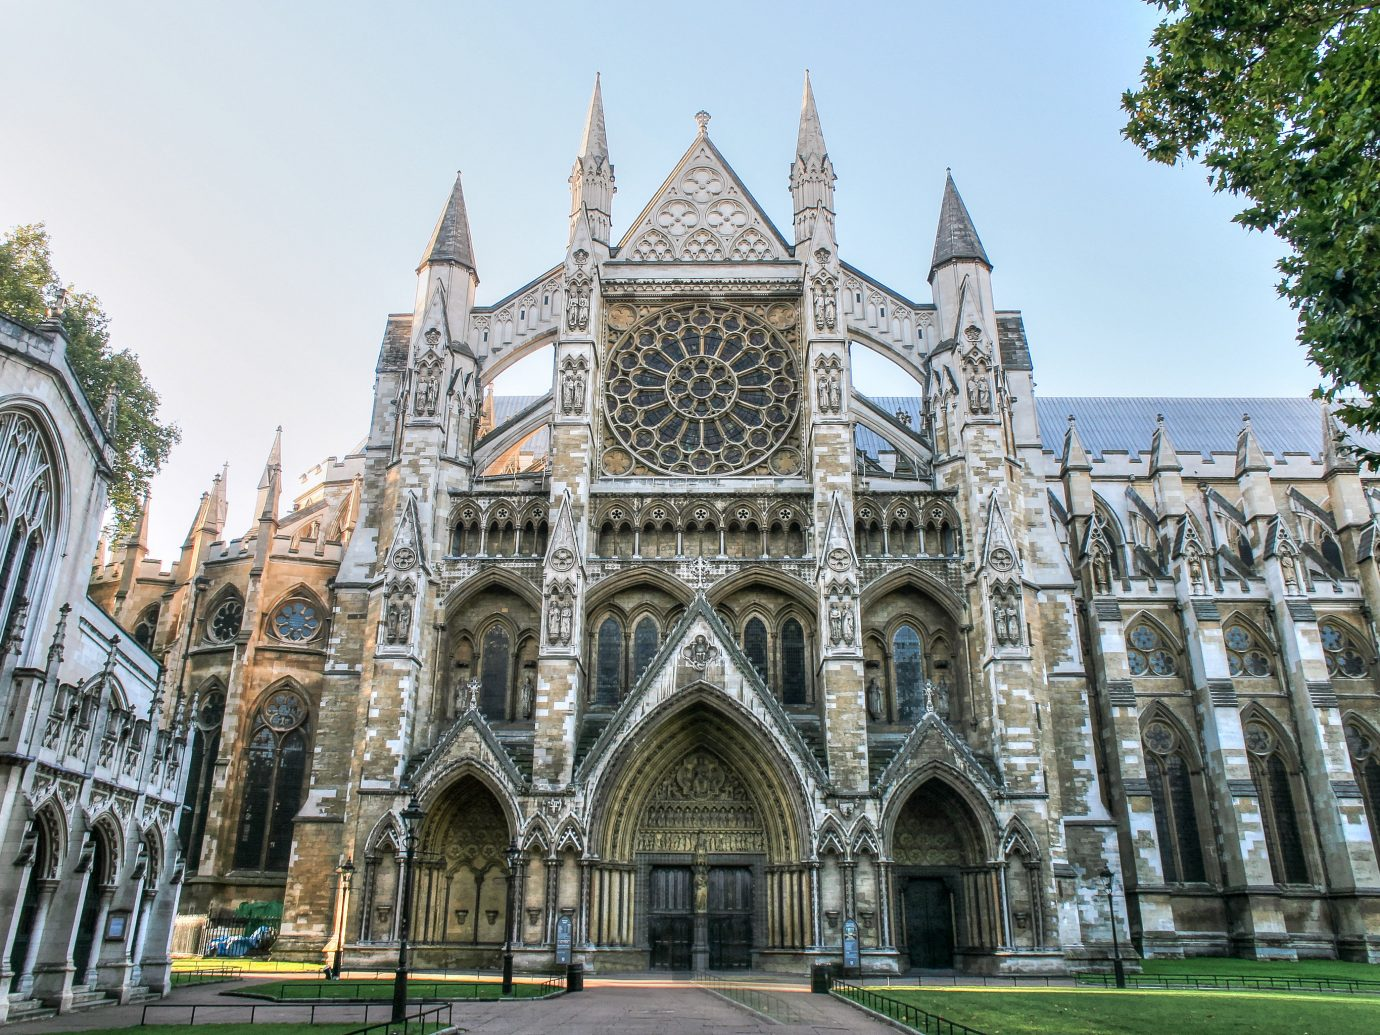 Trip Ideas outdoor sky building place of worship landmark Church Architecture cathedral gothic architecture facade palace old estate stately home stone big